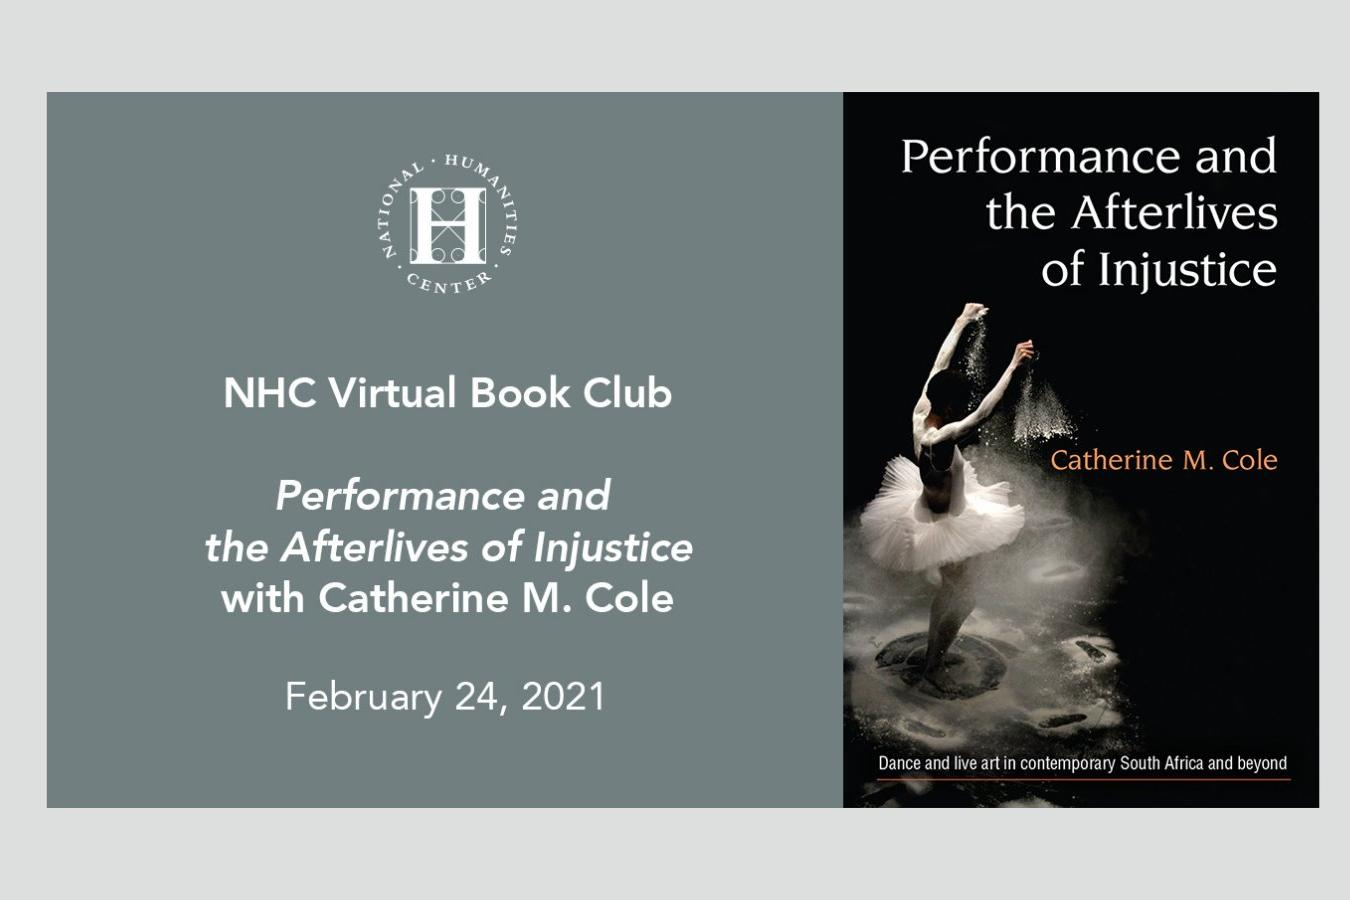 NHC virtual book club flyer with bookcover image